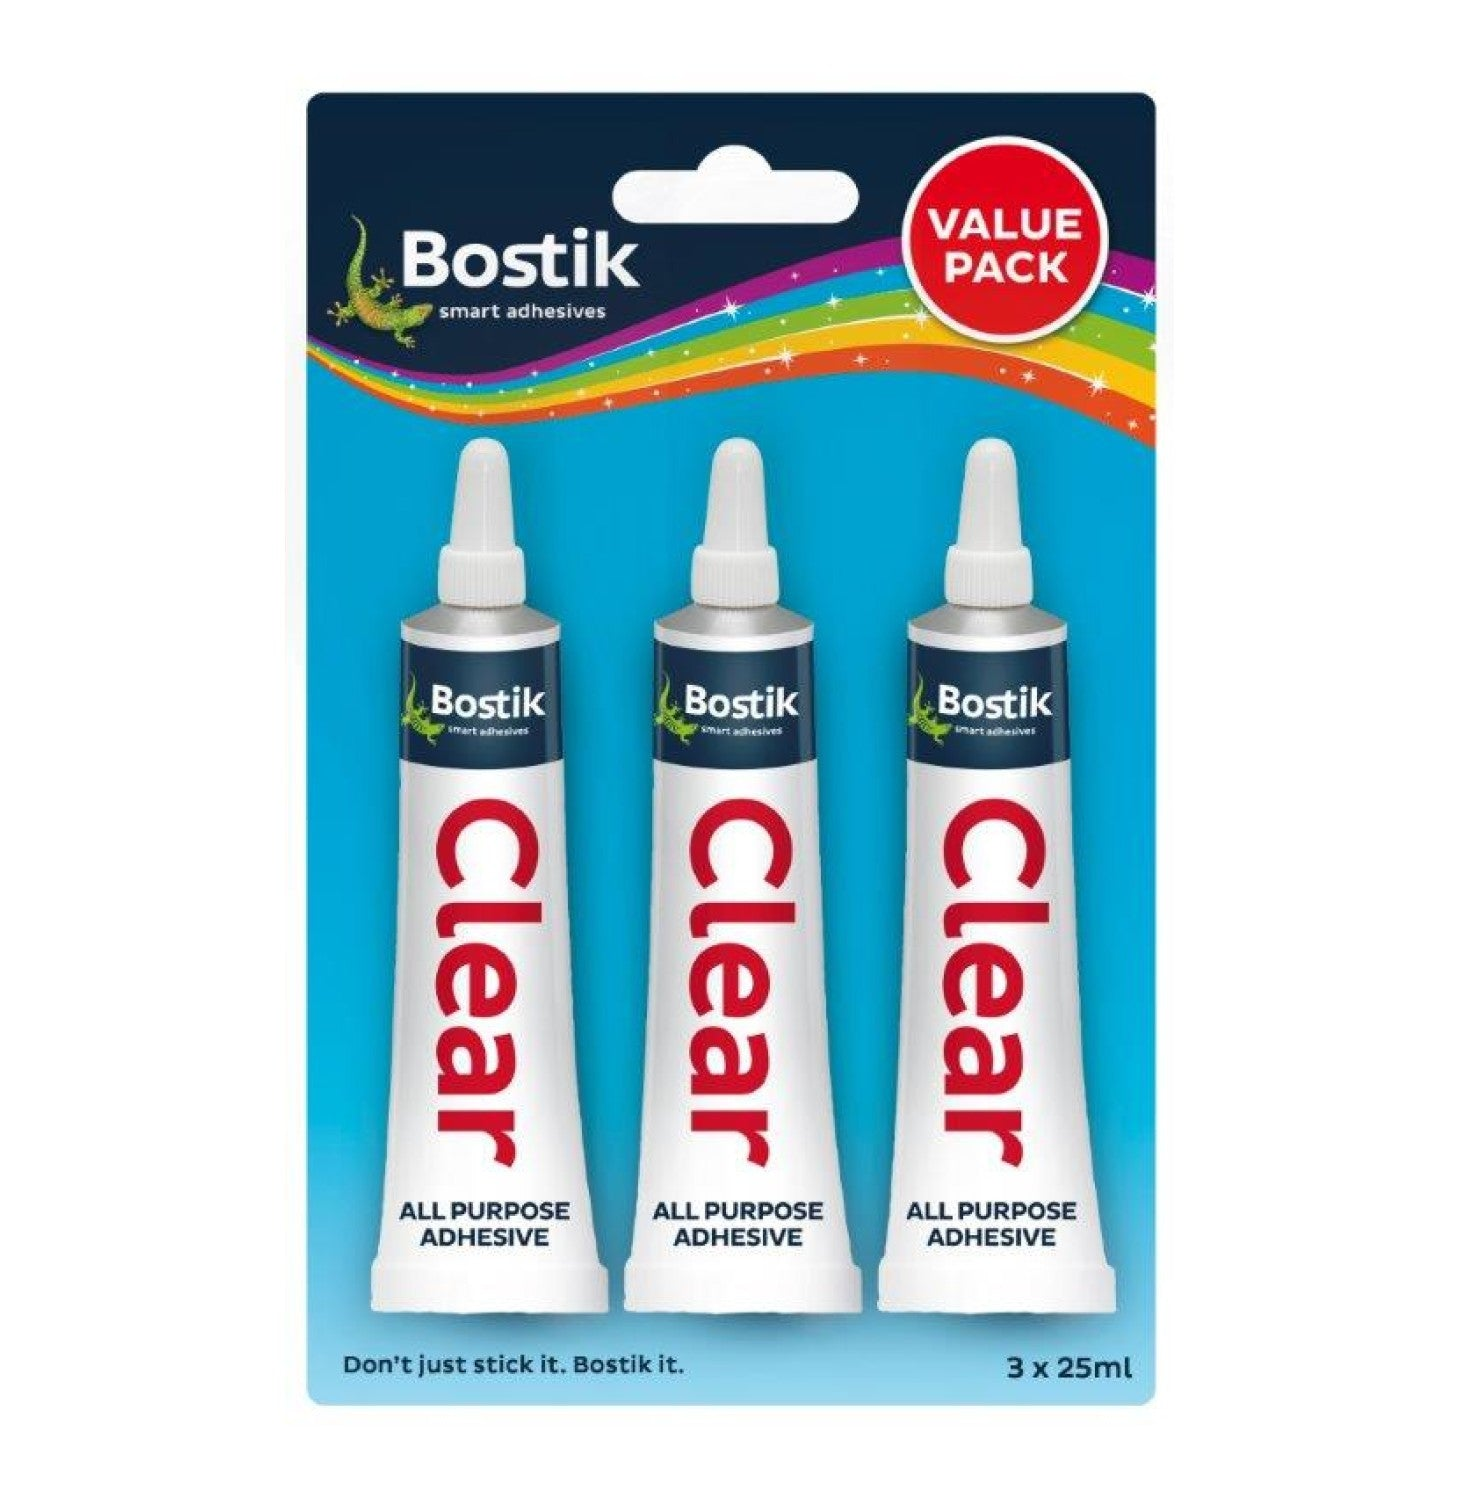 Bostik - Clear Adhesive Glue Value Pack - iloveza.com